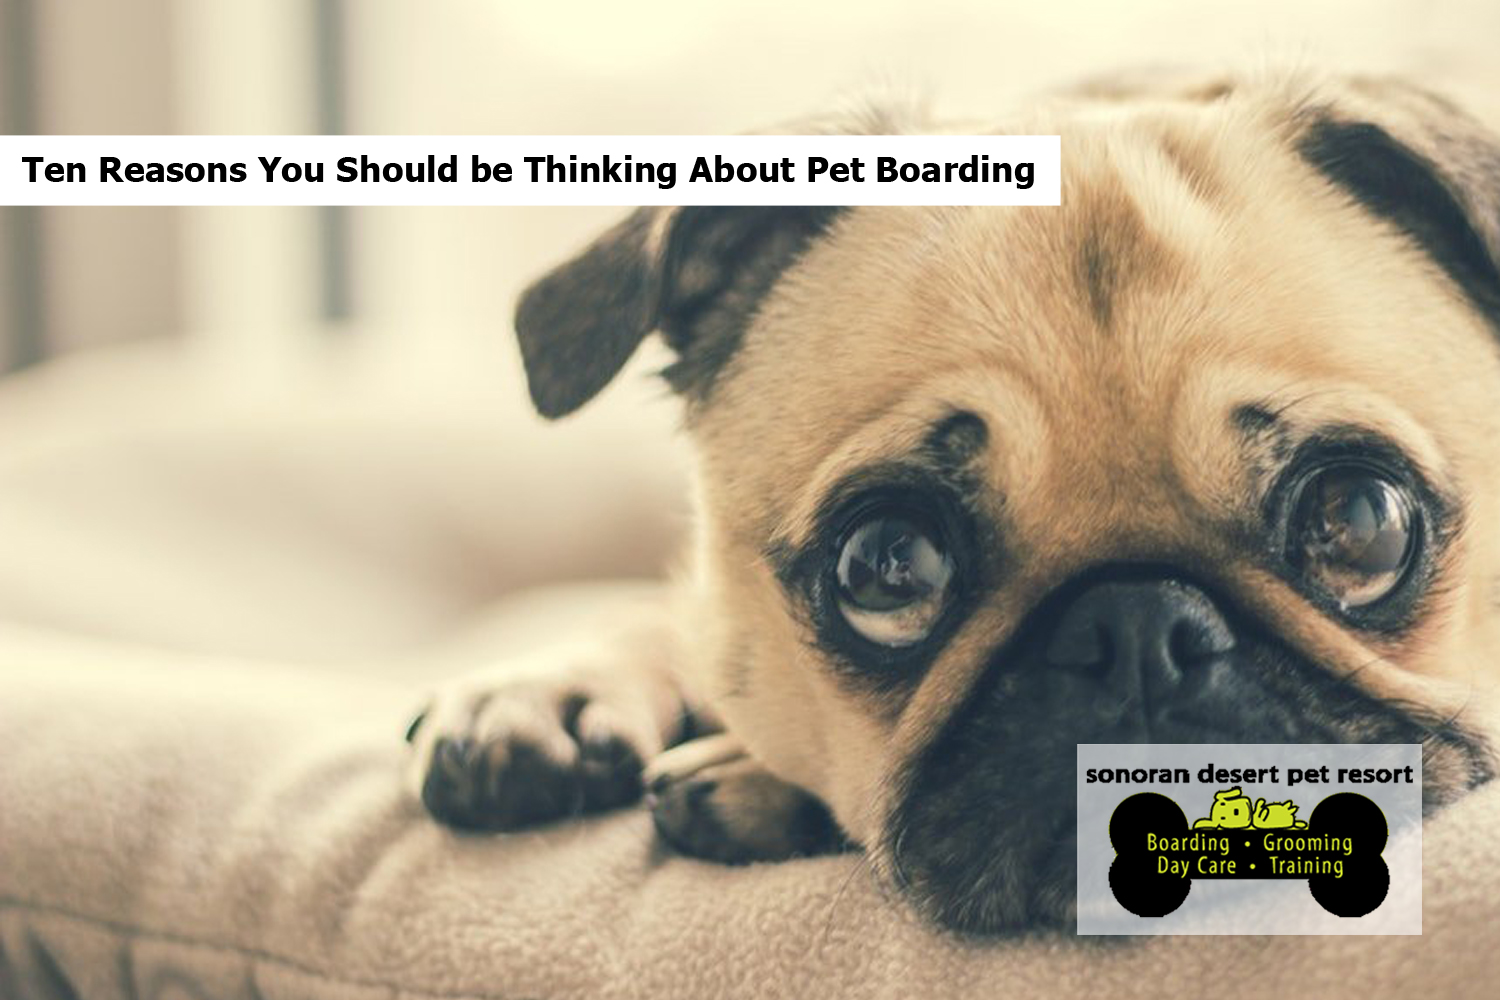 Ten Reasons You Should be Thinking About Pet Boarding